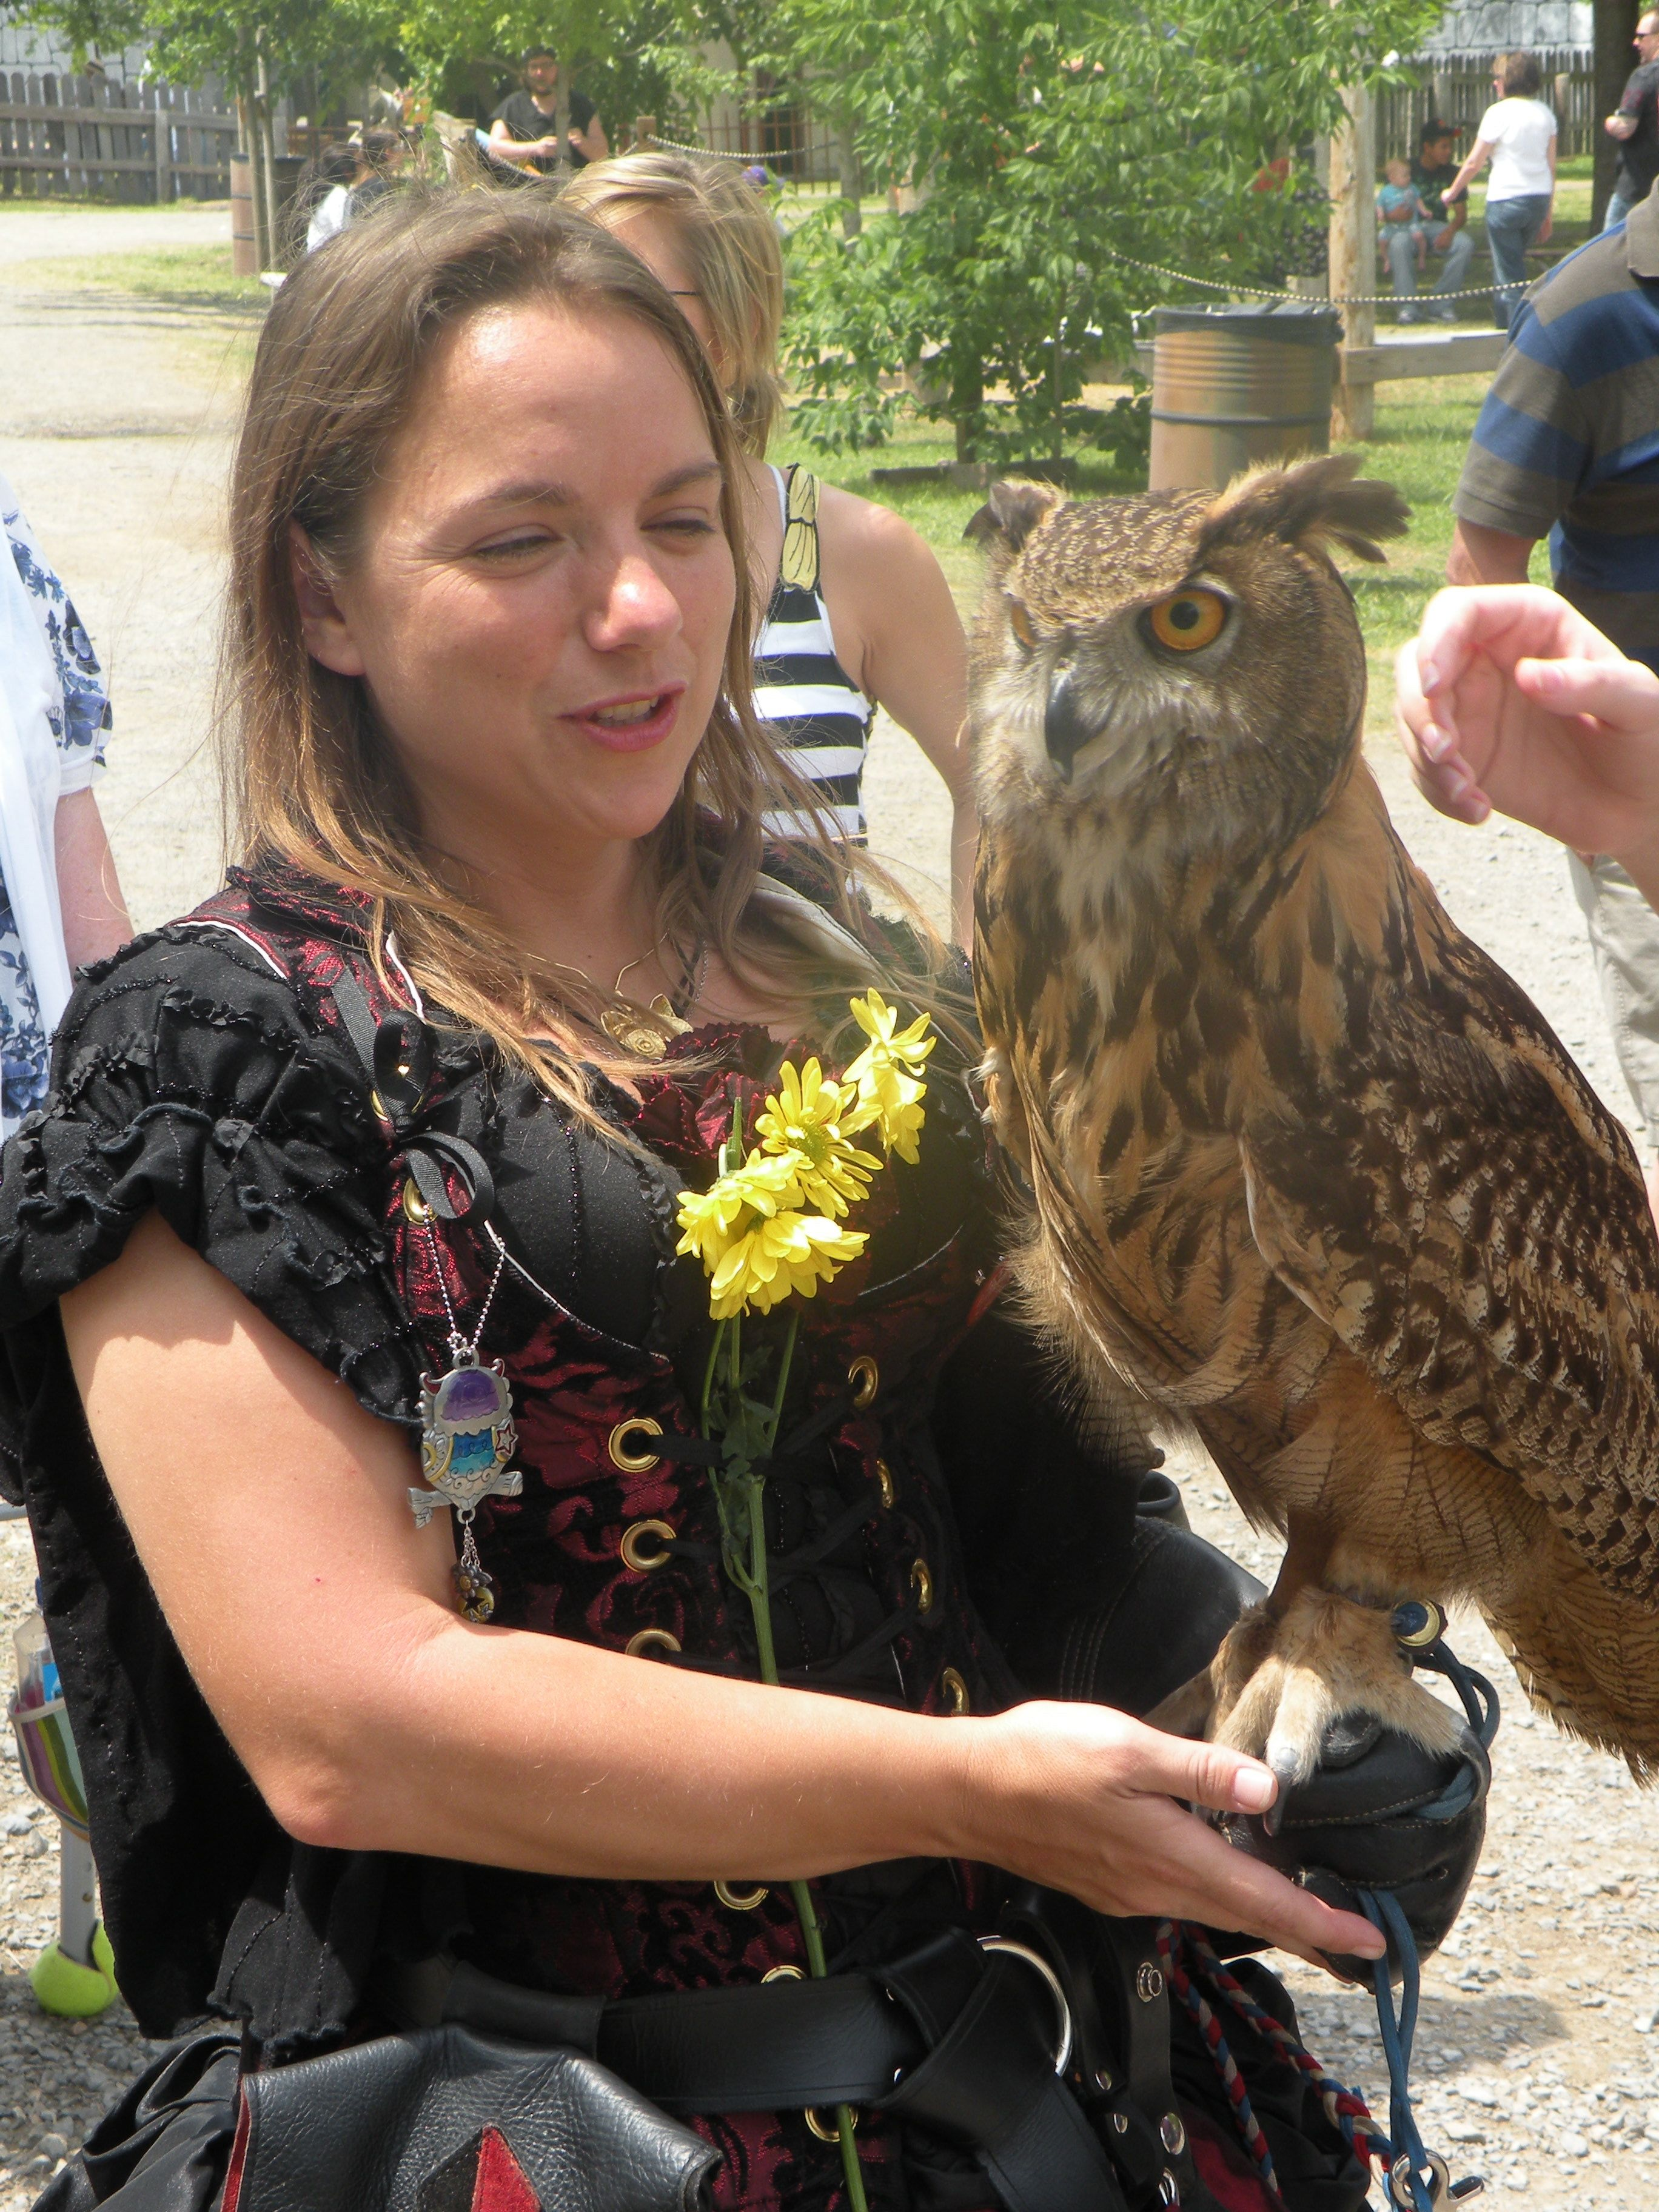 Owl and Trainer of Royal Gauntlet Birds of Prey at Renaissance Faire, The Castle at Muskogee, Muskogee, Oklahoma photo by kristin nador